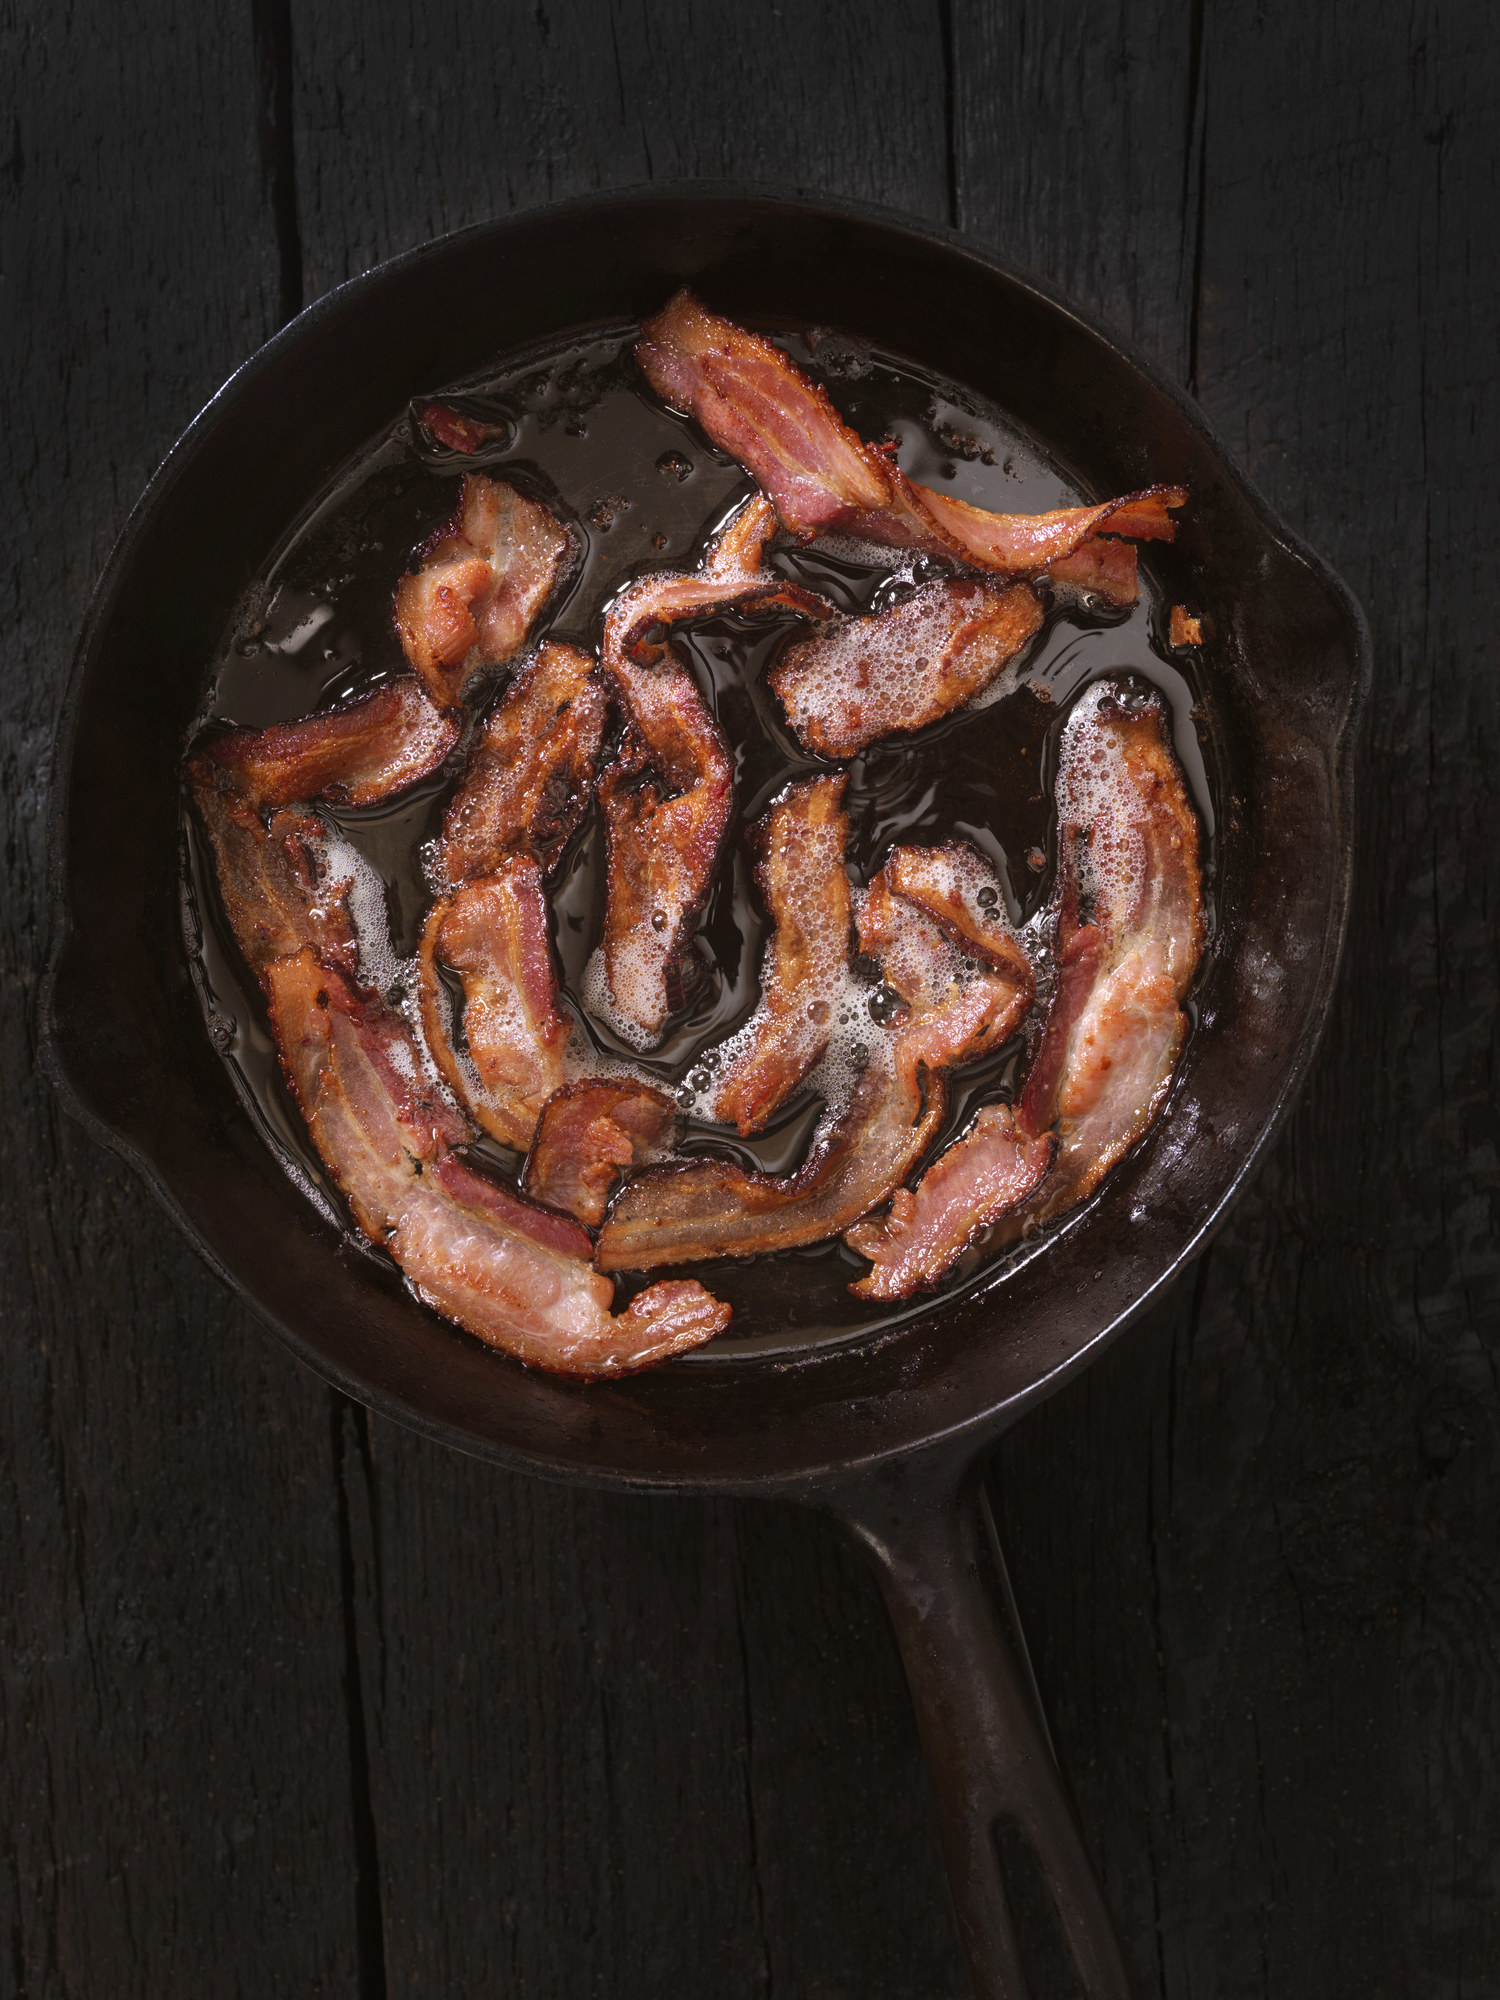 Bacon cooking in a sizzling cast iron skillet.